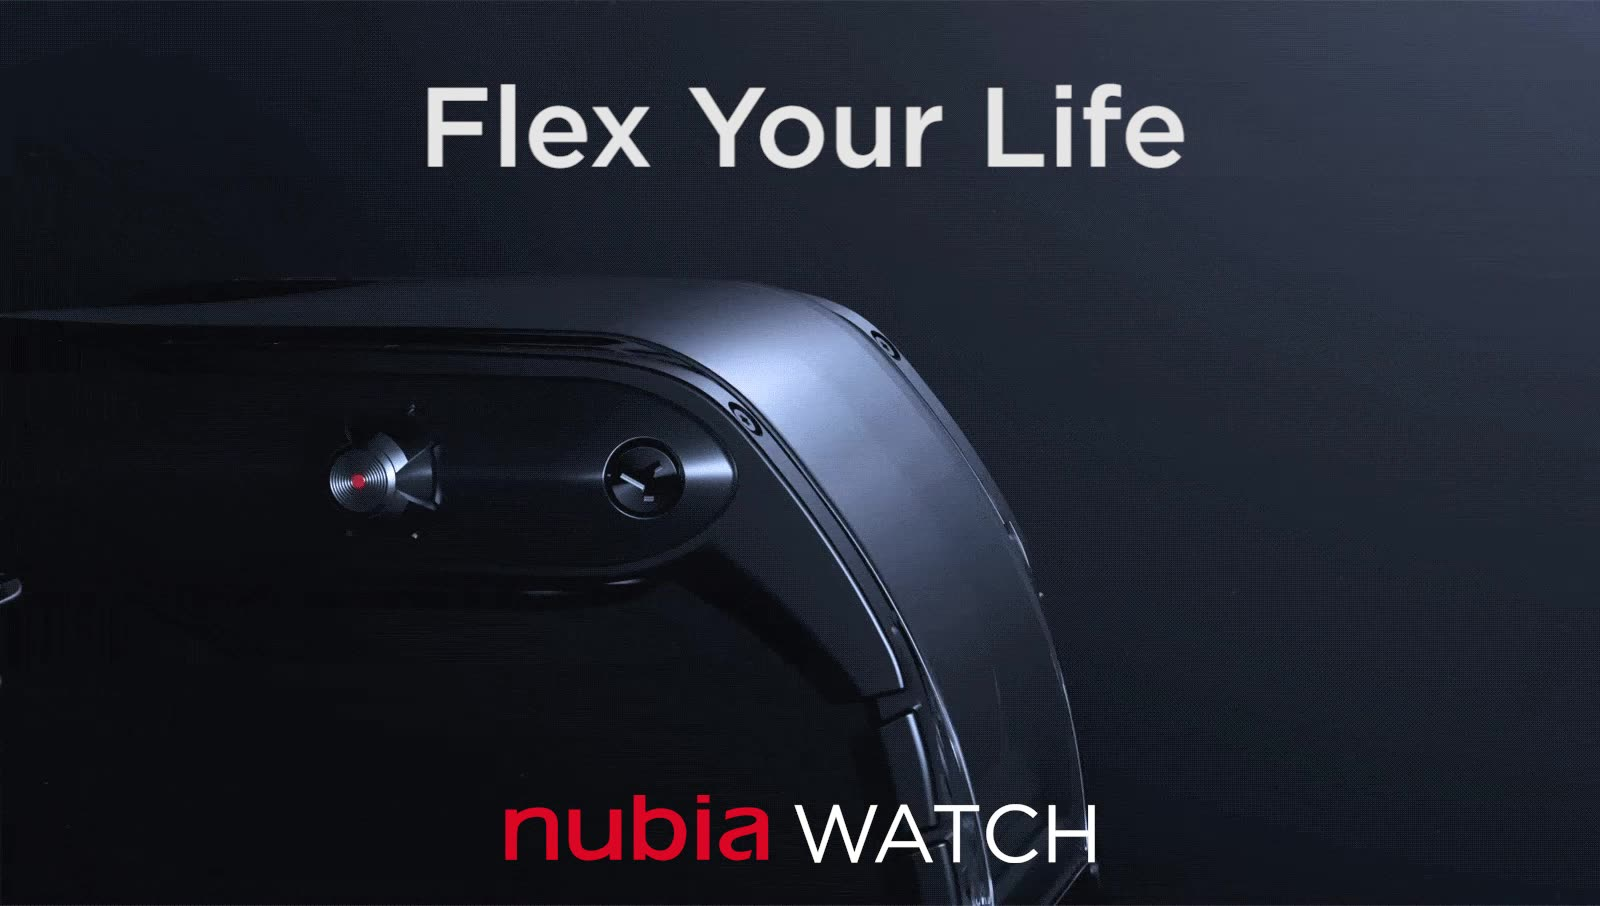 Gotta stay flexible with the times, just like the nubia WATCH!